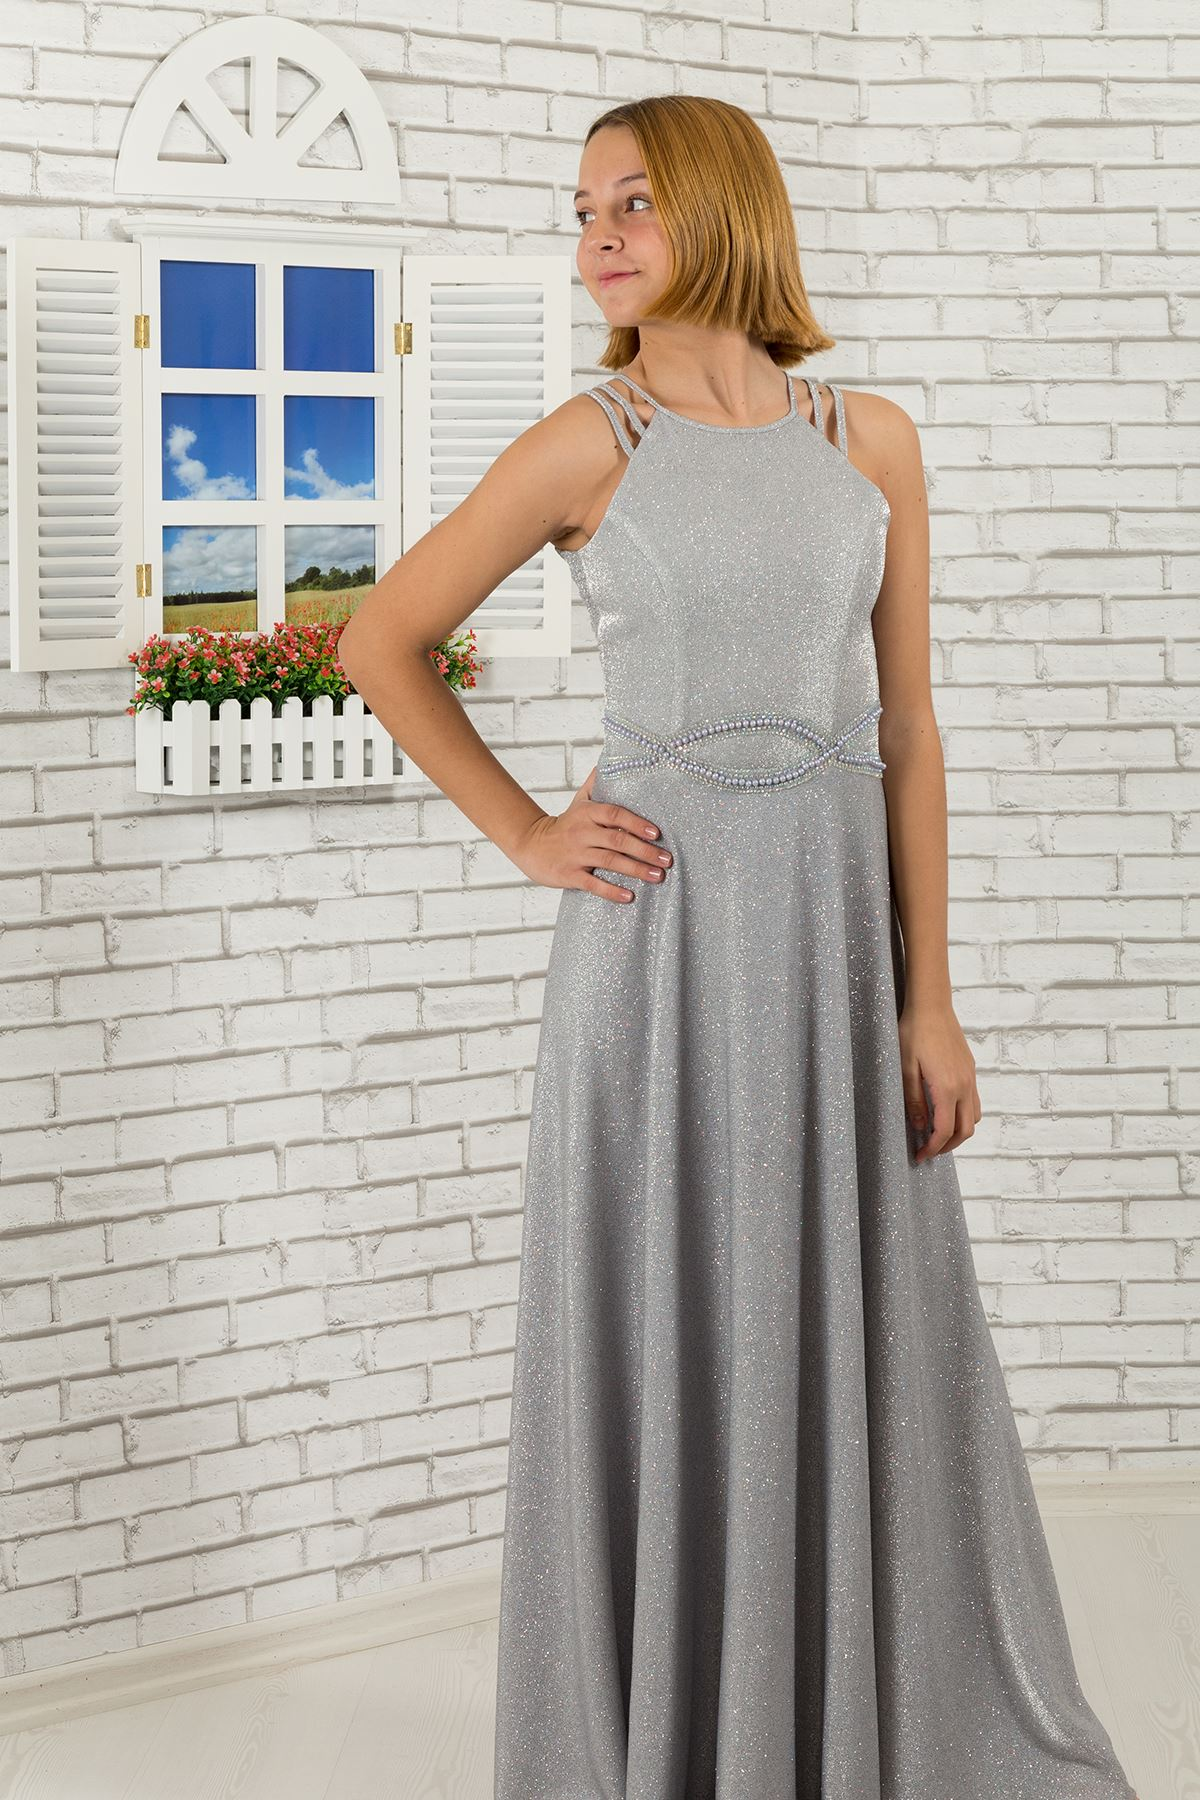 Waist print stone, shoulder detail, custom silvery fabric girl children evening dress 511 Grey